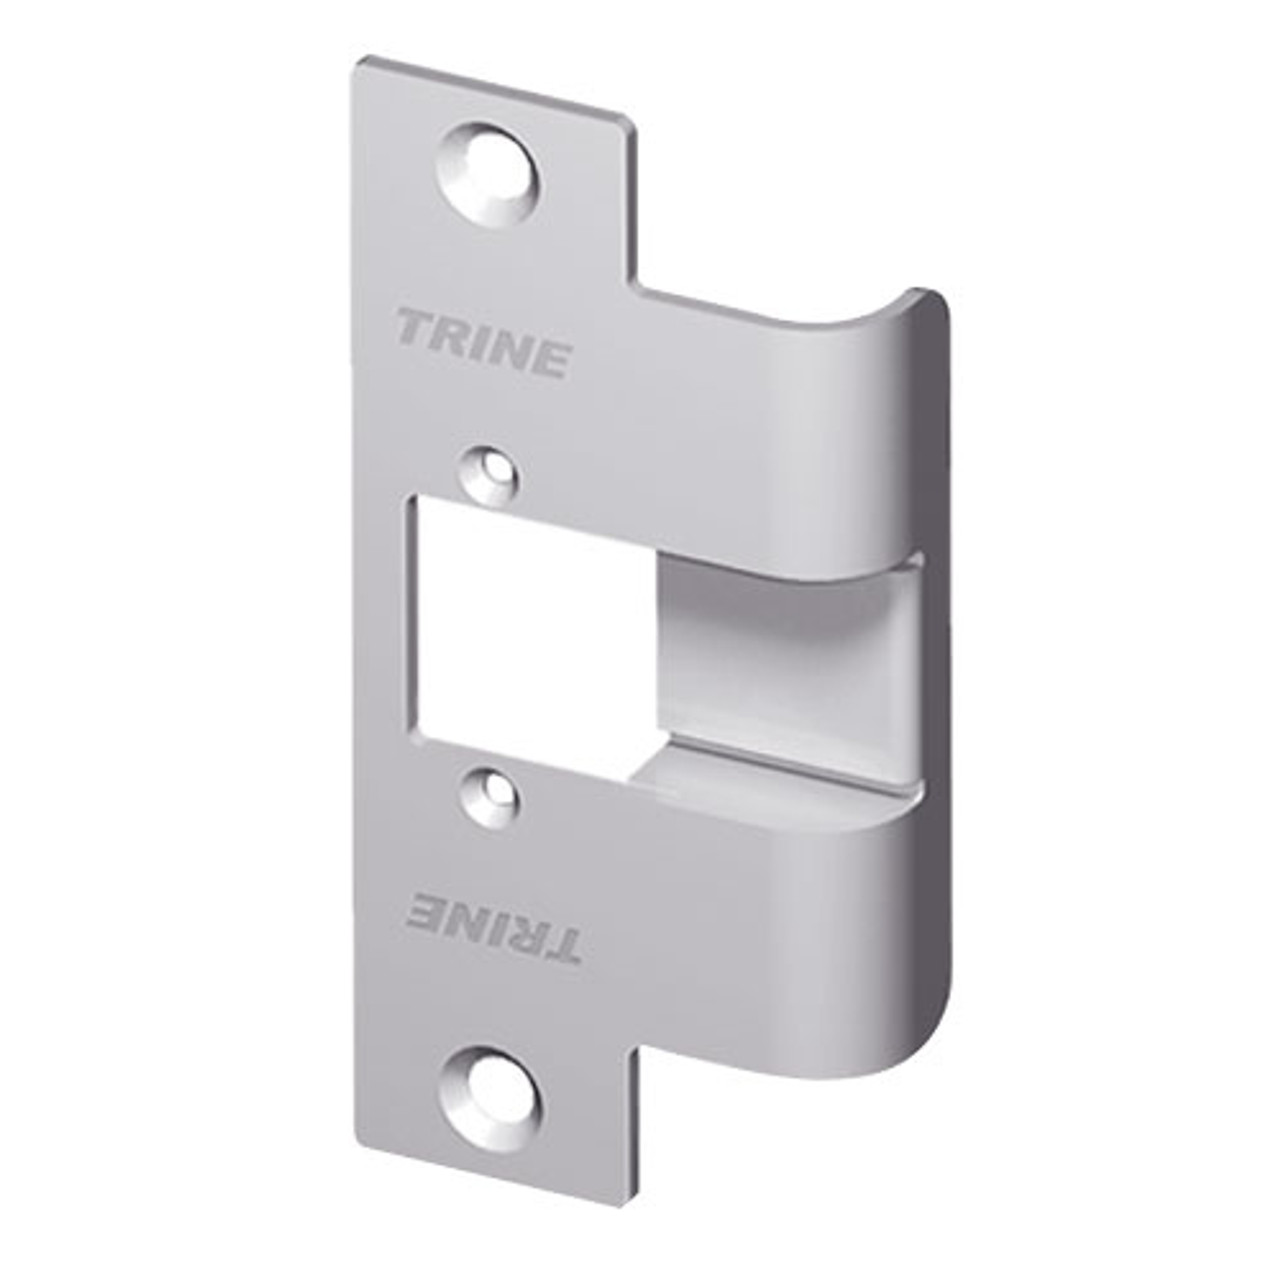 478X-375-US32D Trine 3000 Series Asa Strike Extended Faceplate in Satin Stainless Steel Finish